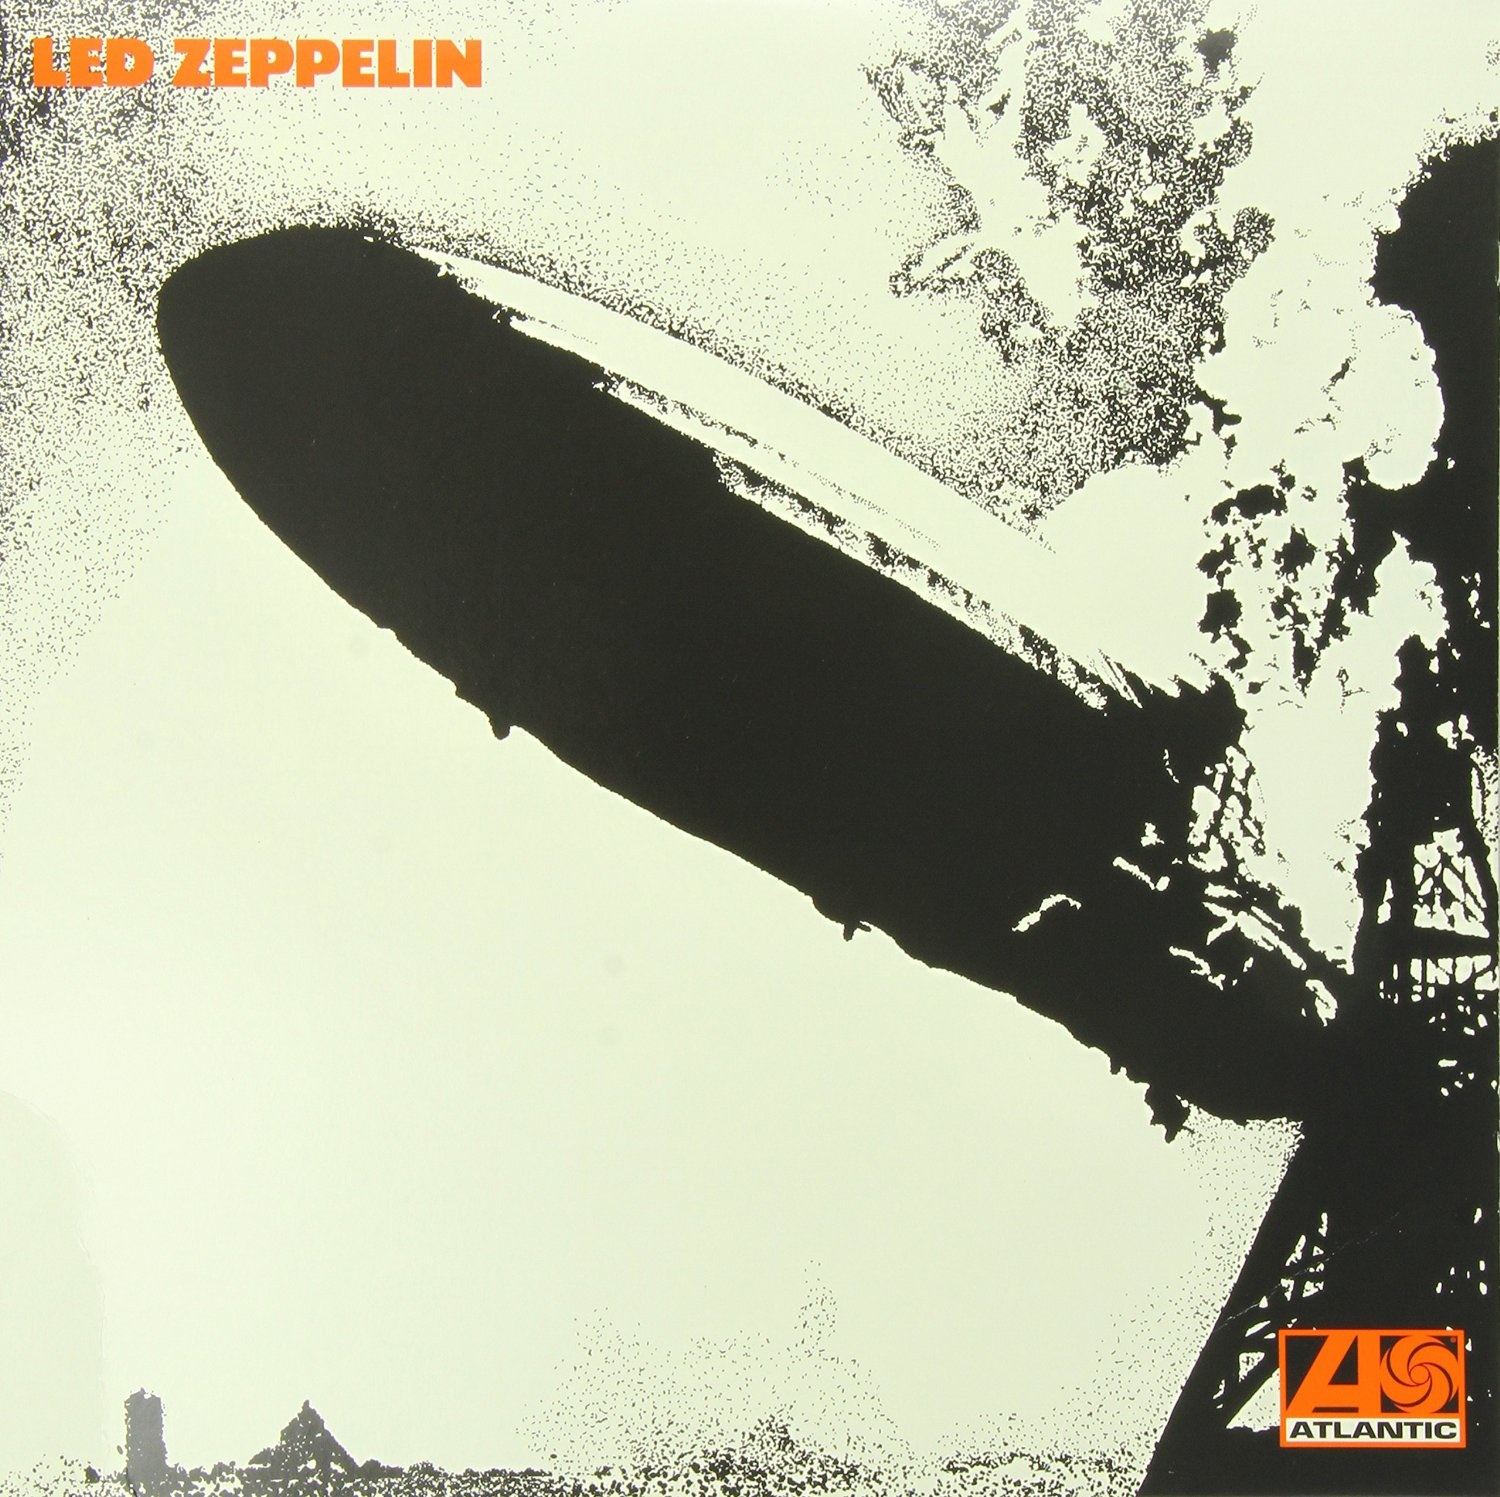 Led Zeppelin - Led Zeppelin I. Remastered Original (LP) led zeppelin led zeppelin original recording remastered 3